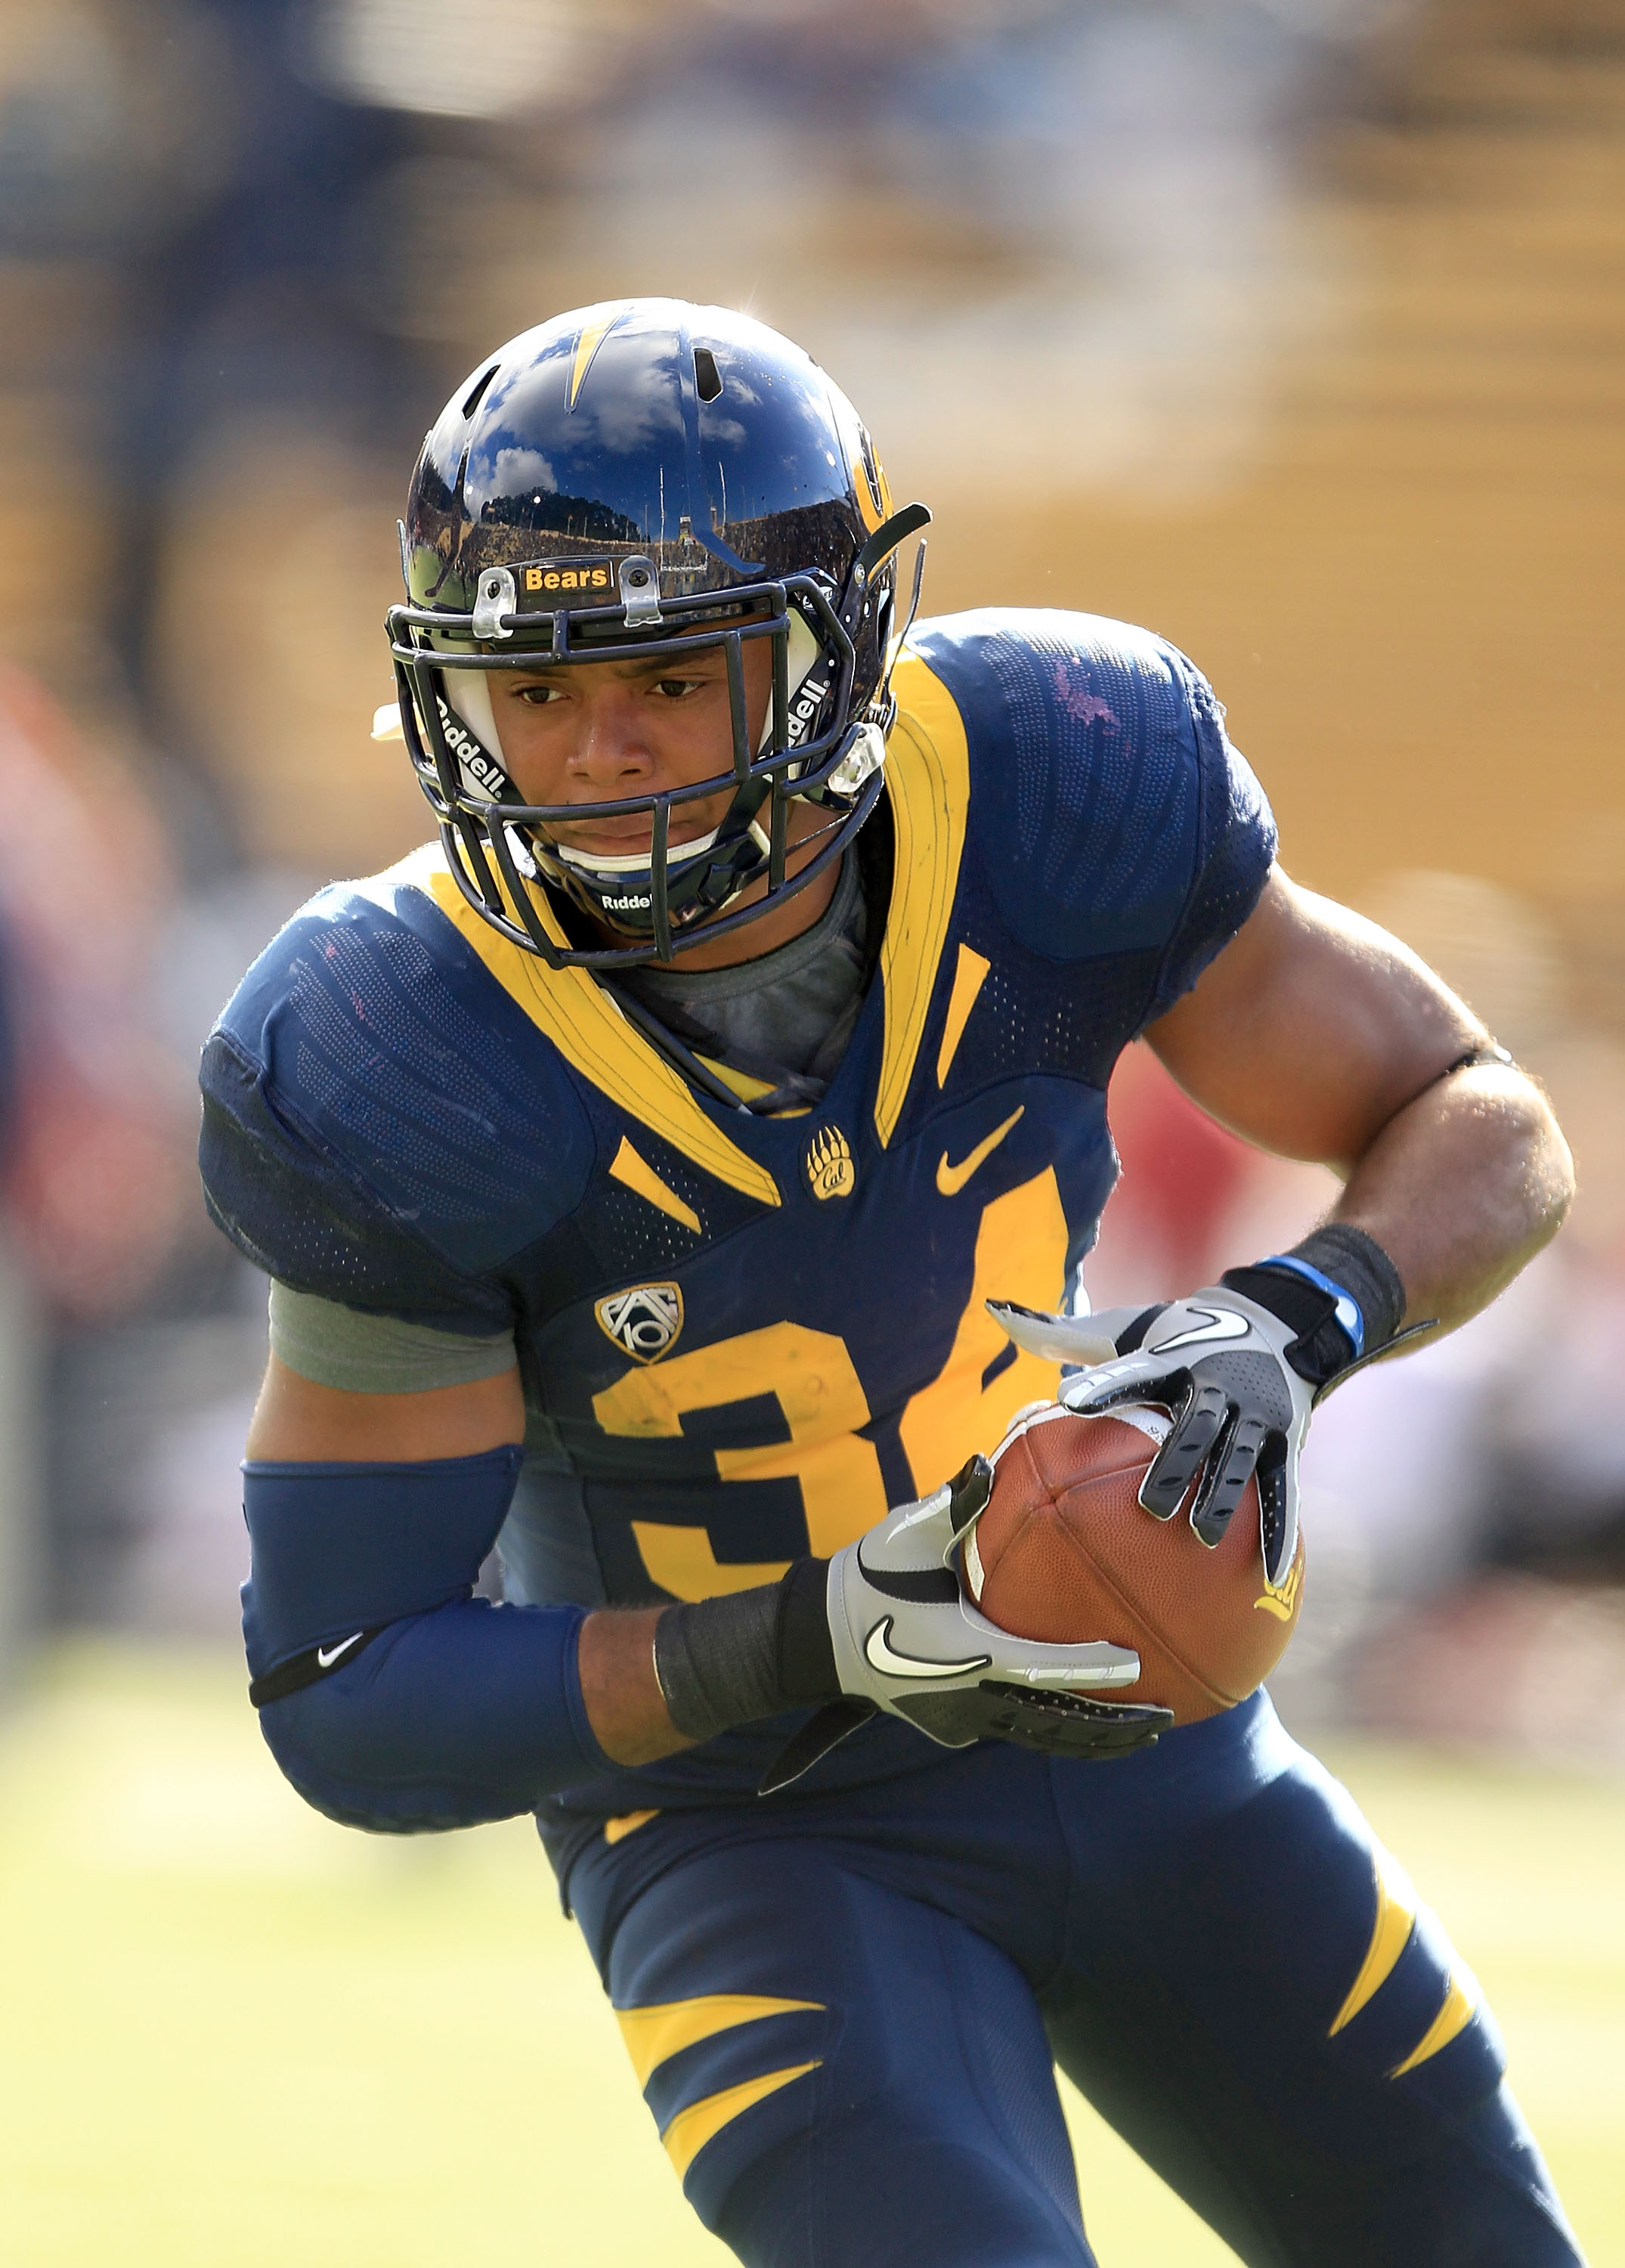 BERKELEY, CA - NOVEMBER 20:  Shane Vereen #34 of the California Golden Bears warms up for their game against the Stanford Cardinal at California Memorial Stadium on November 20, 2010 in Berkeley, California.  (Photo by Ezra Shaw/Getty Images)